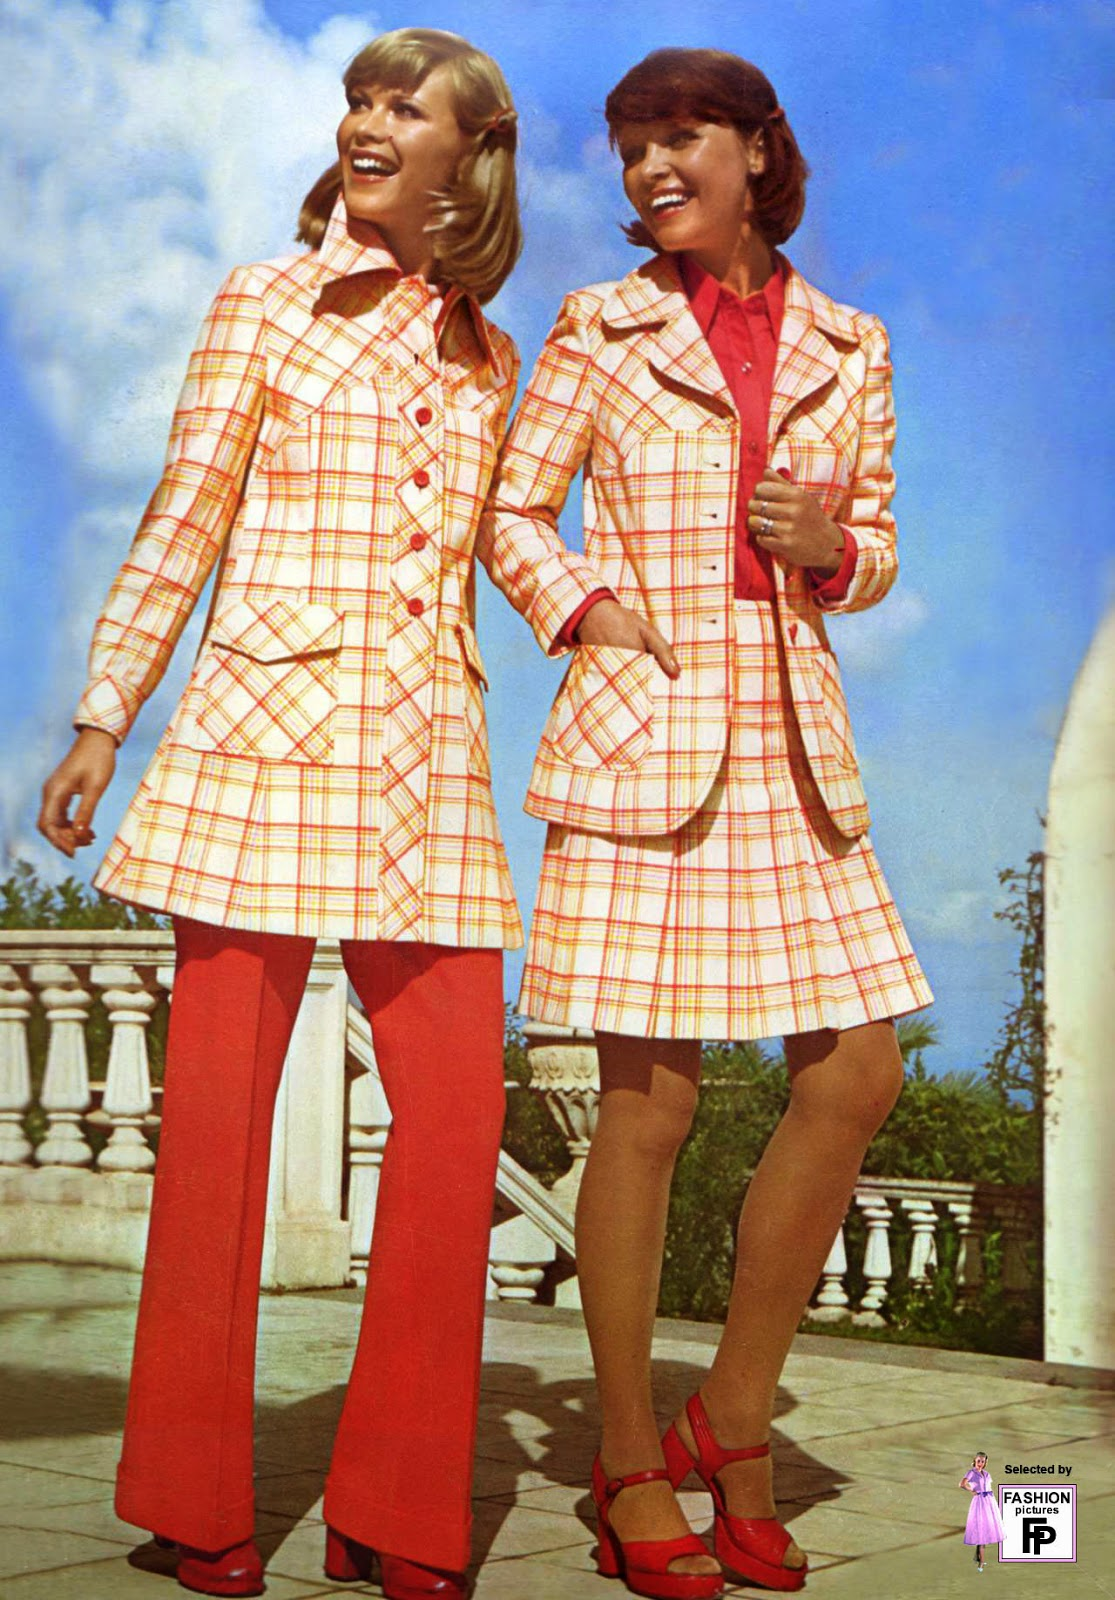 Fashion: 50 Awesome And Colorful Photoshoots Of The 1970s Fashion